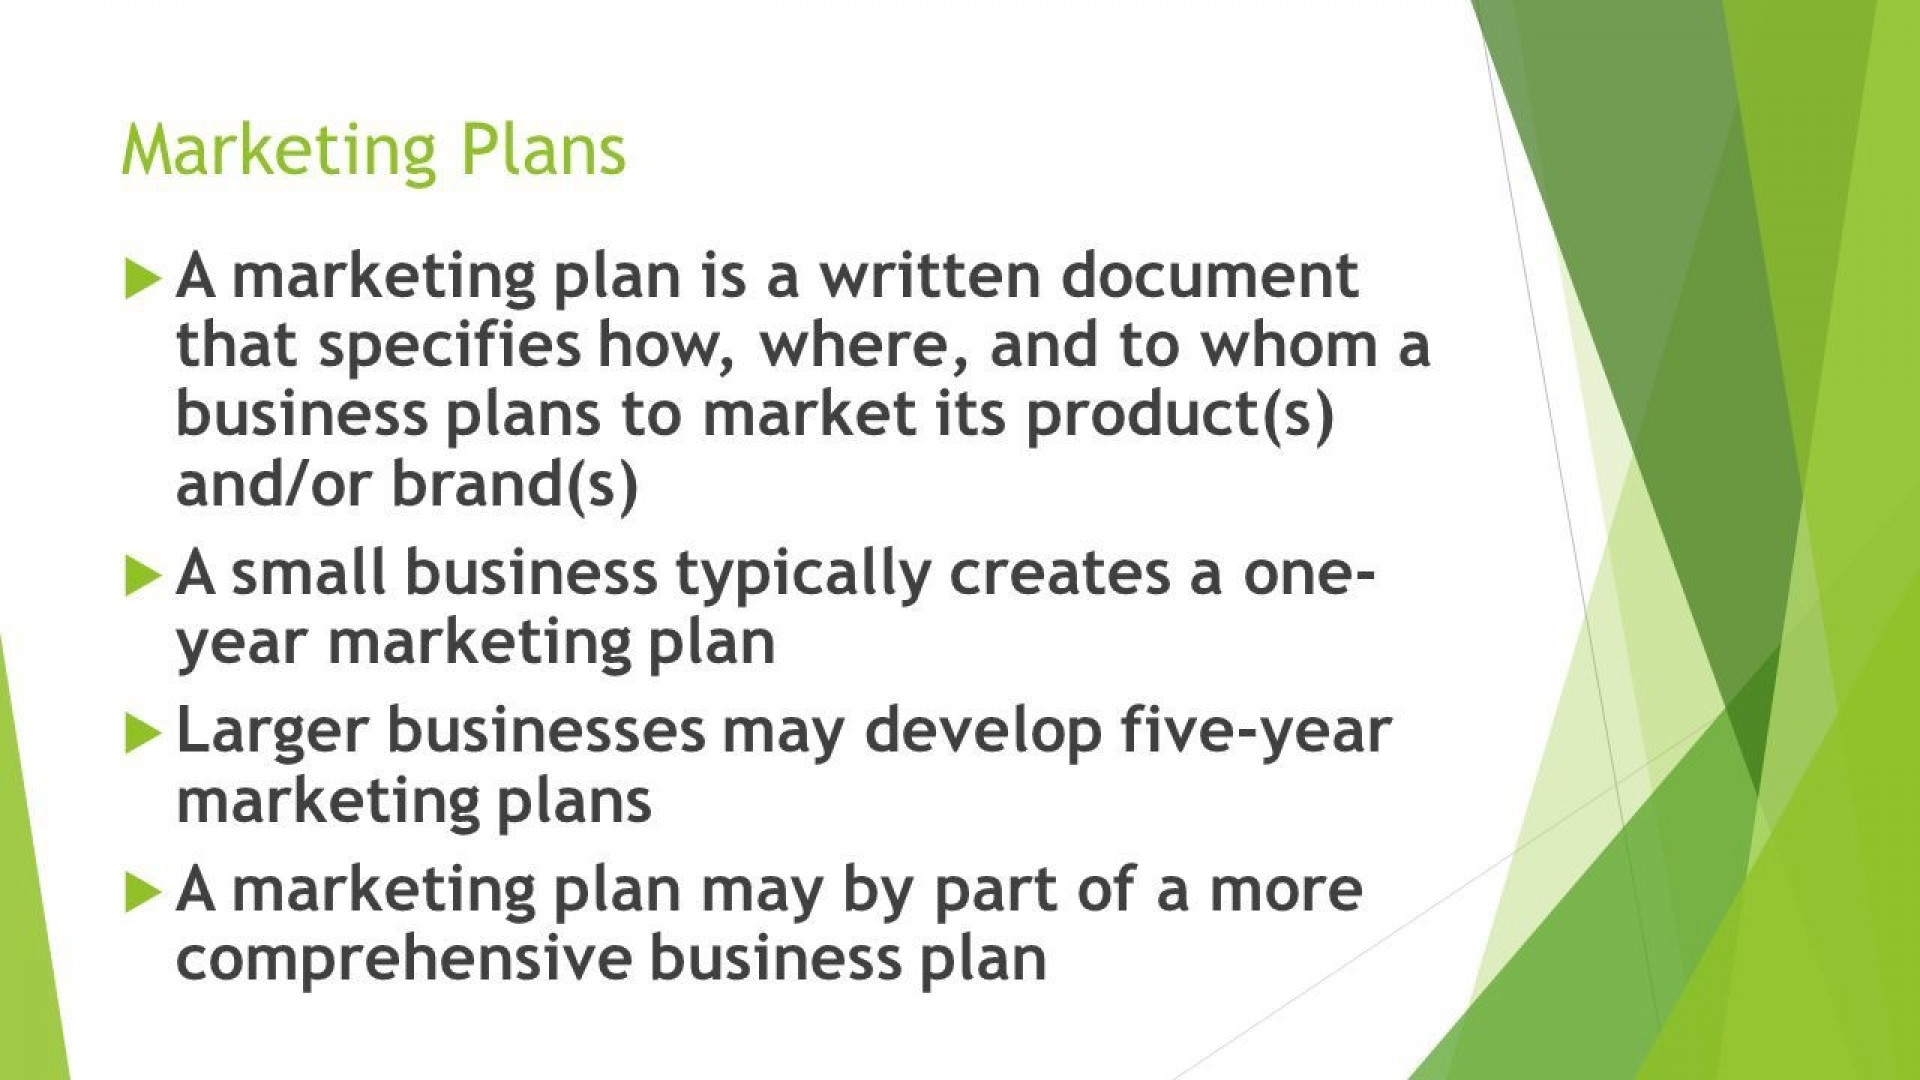 009 Fantastic Marketing Plan Format For Small Busines High Resolution  Business Template Free1920